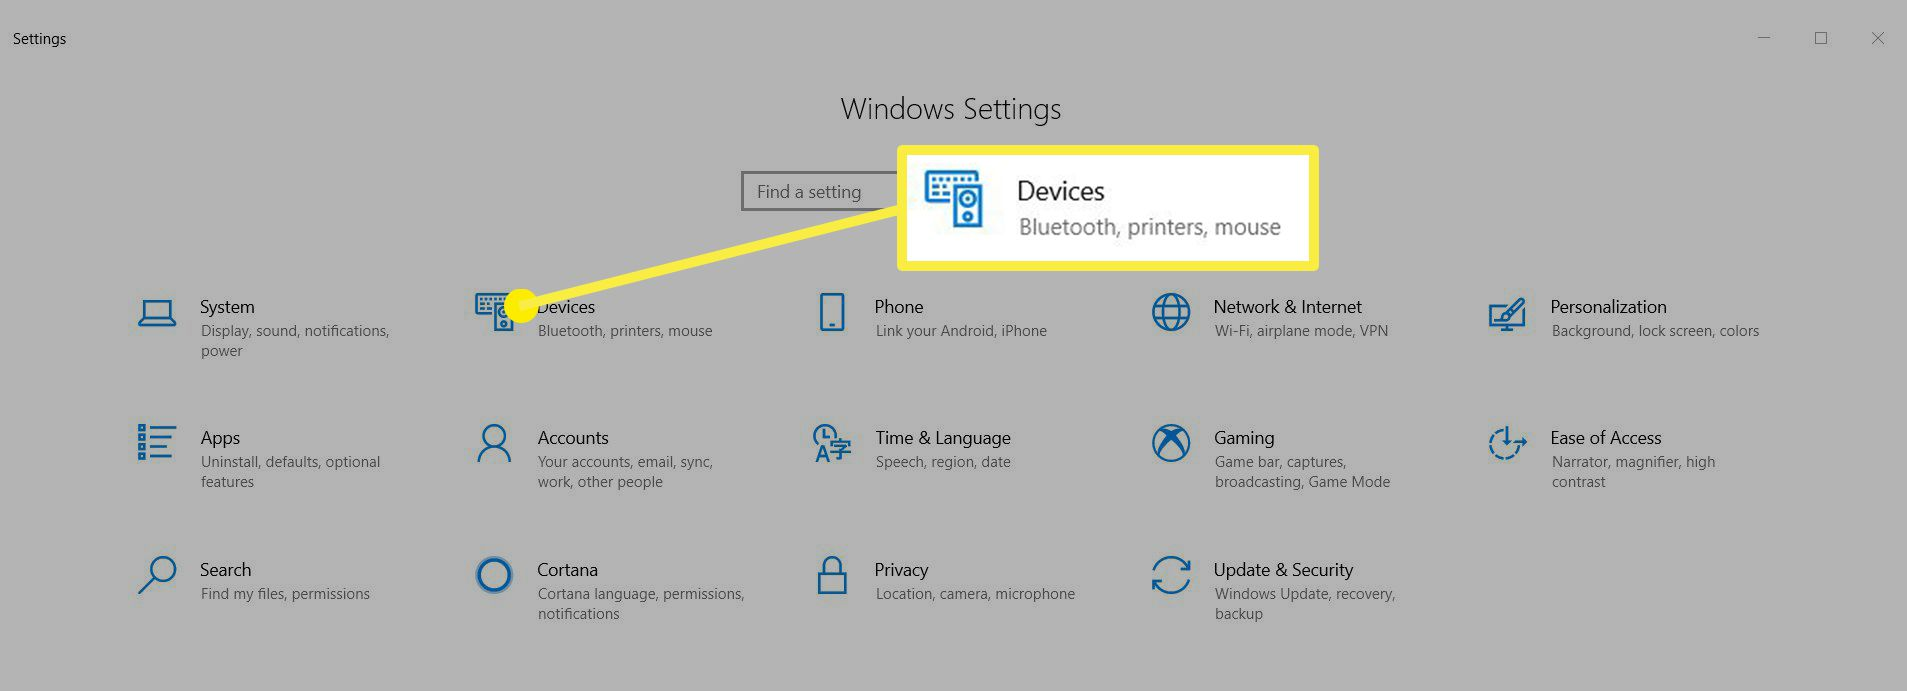 Windows Setting window showing Devices option.